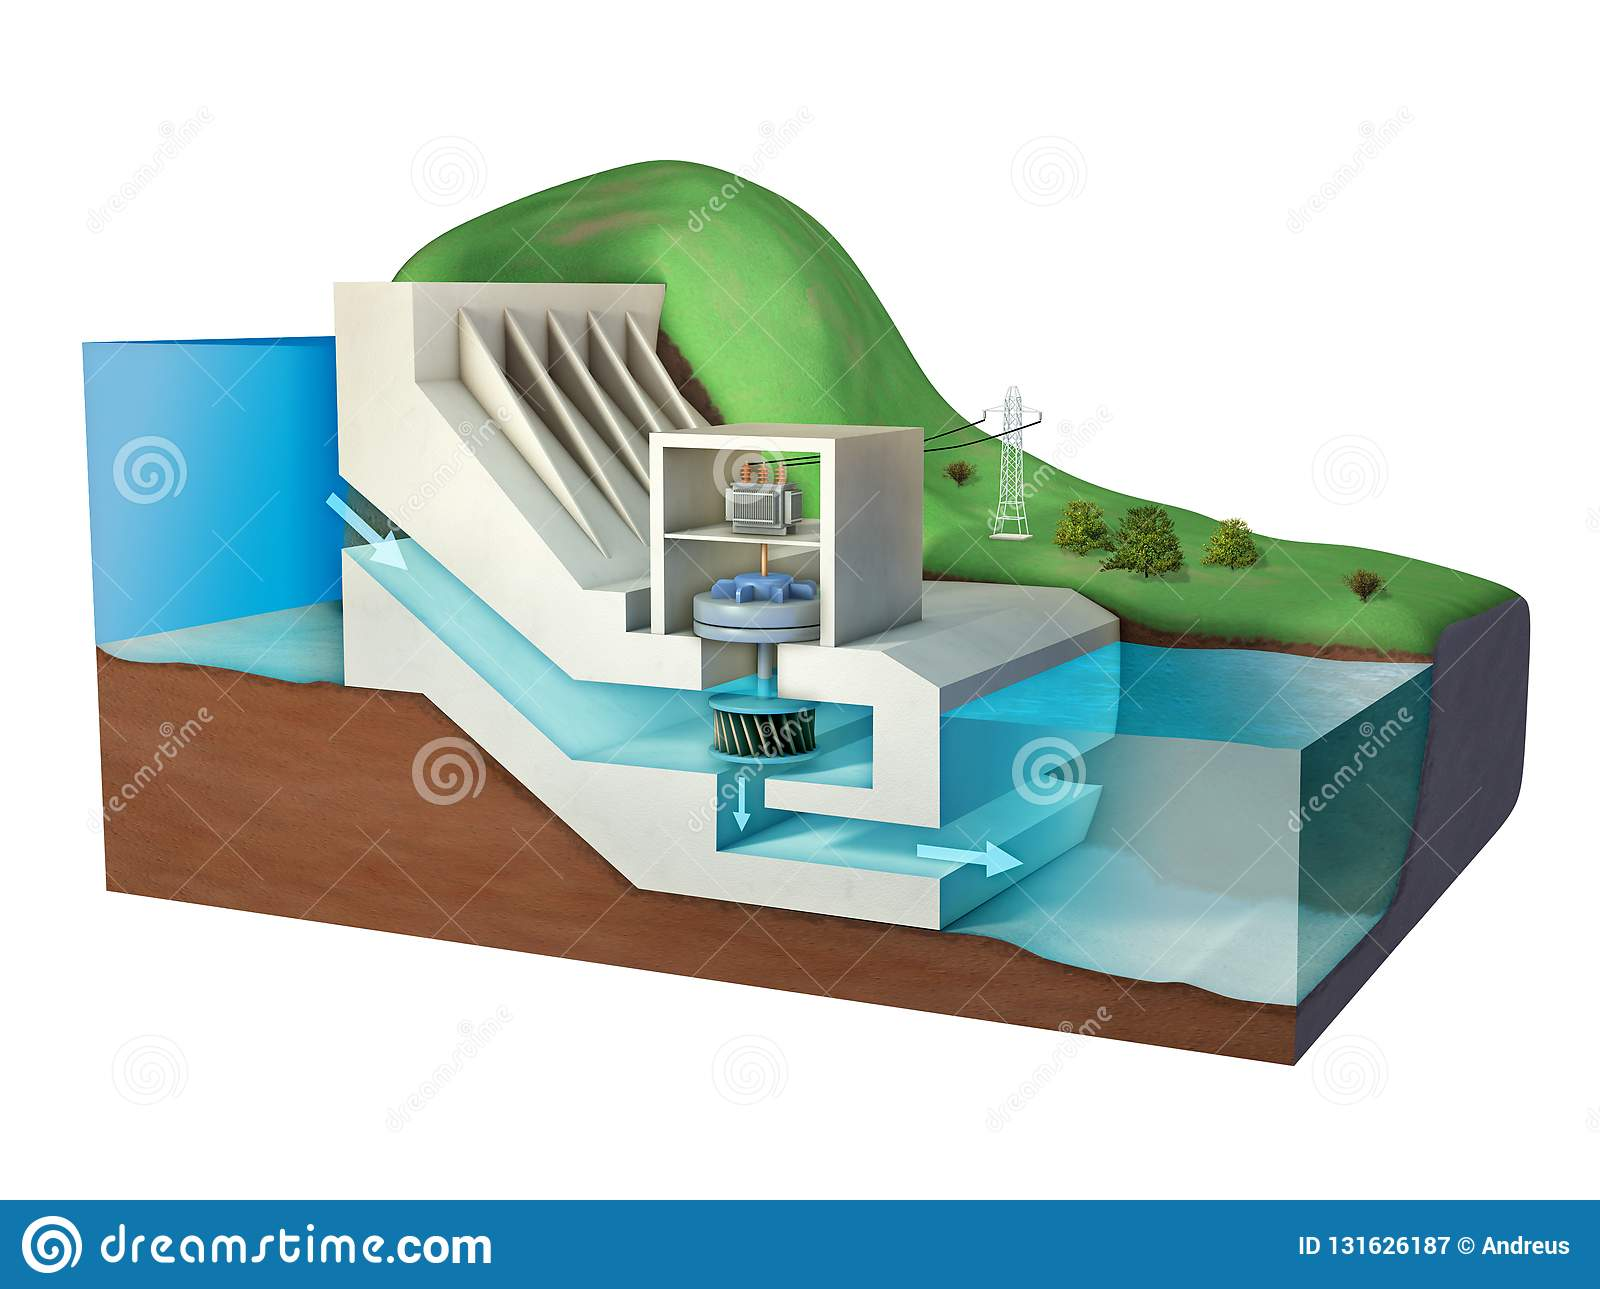 Hydroelectric power plant diagram.